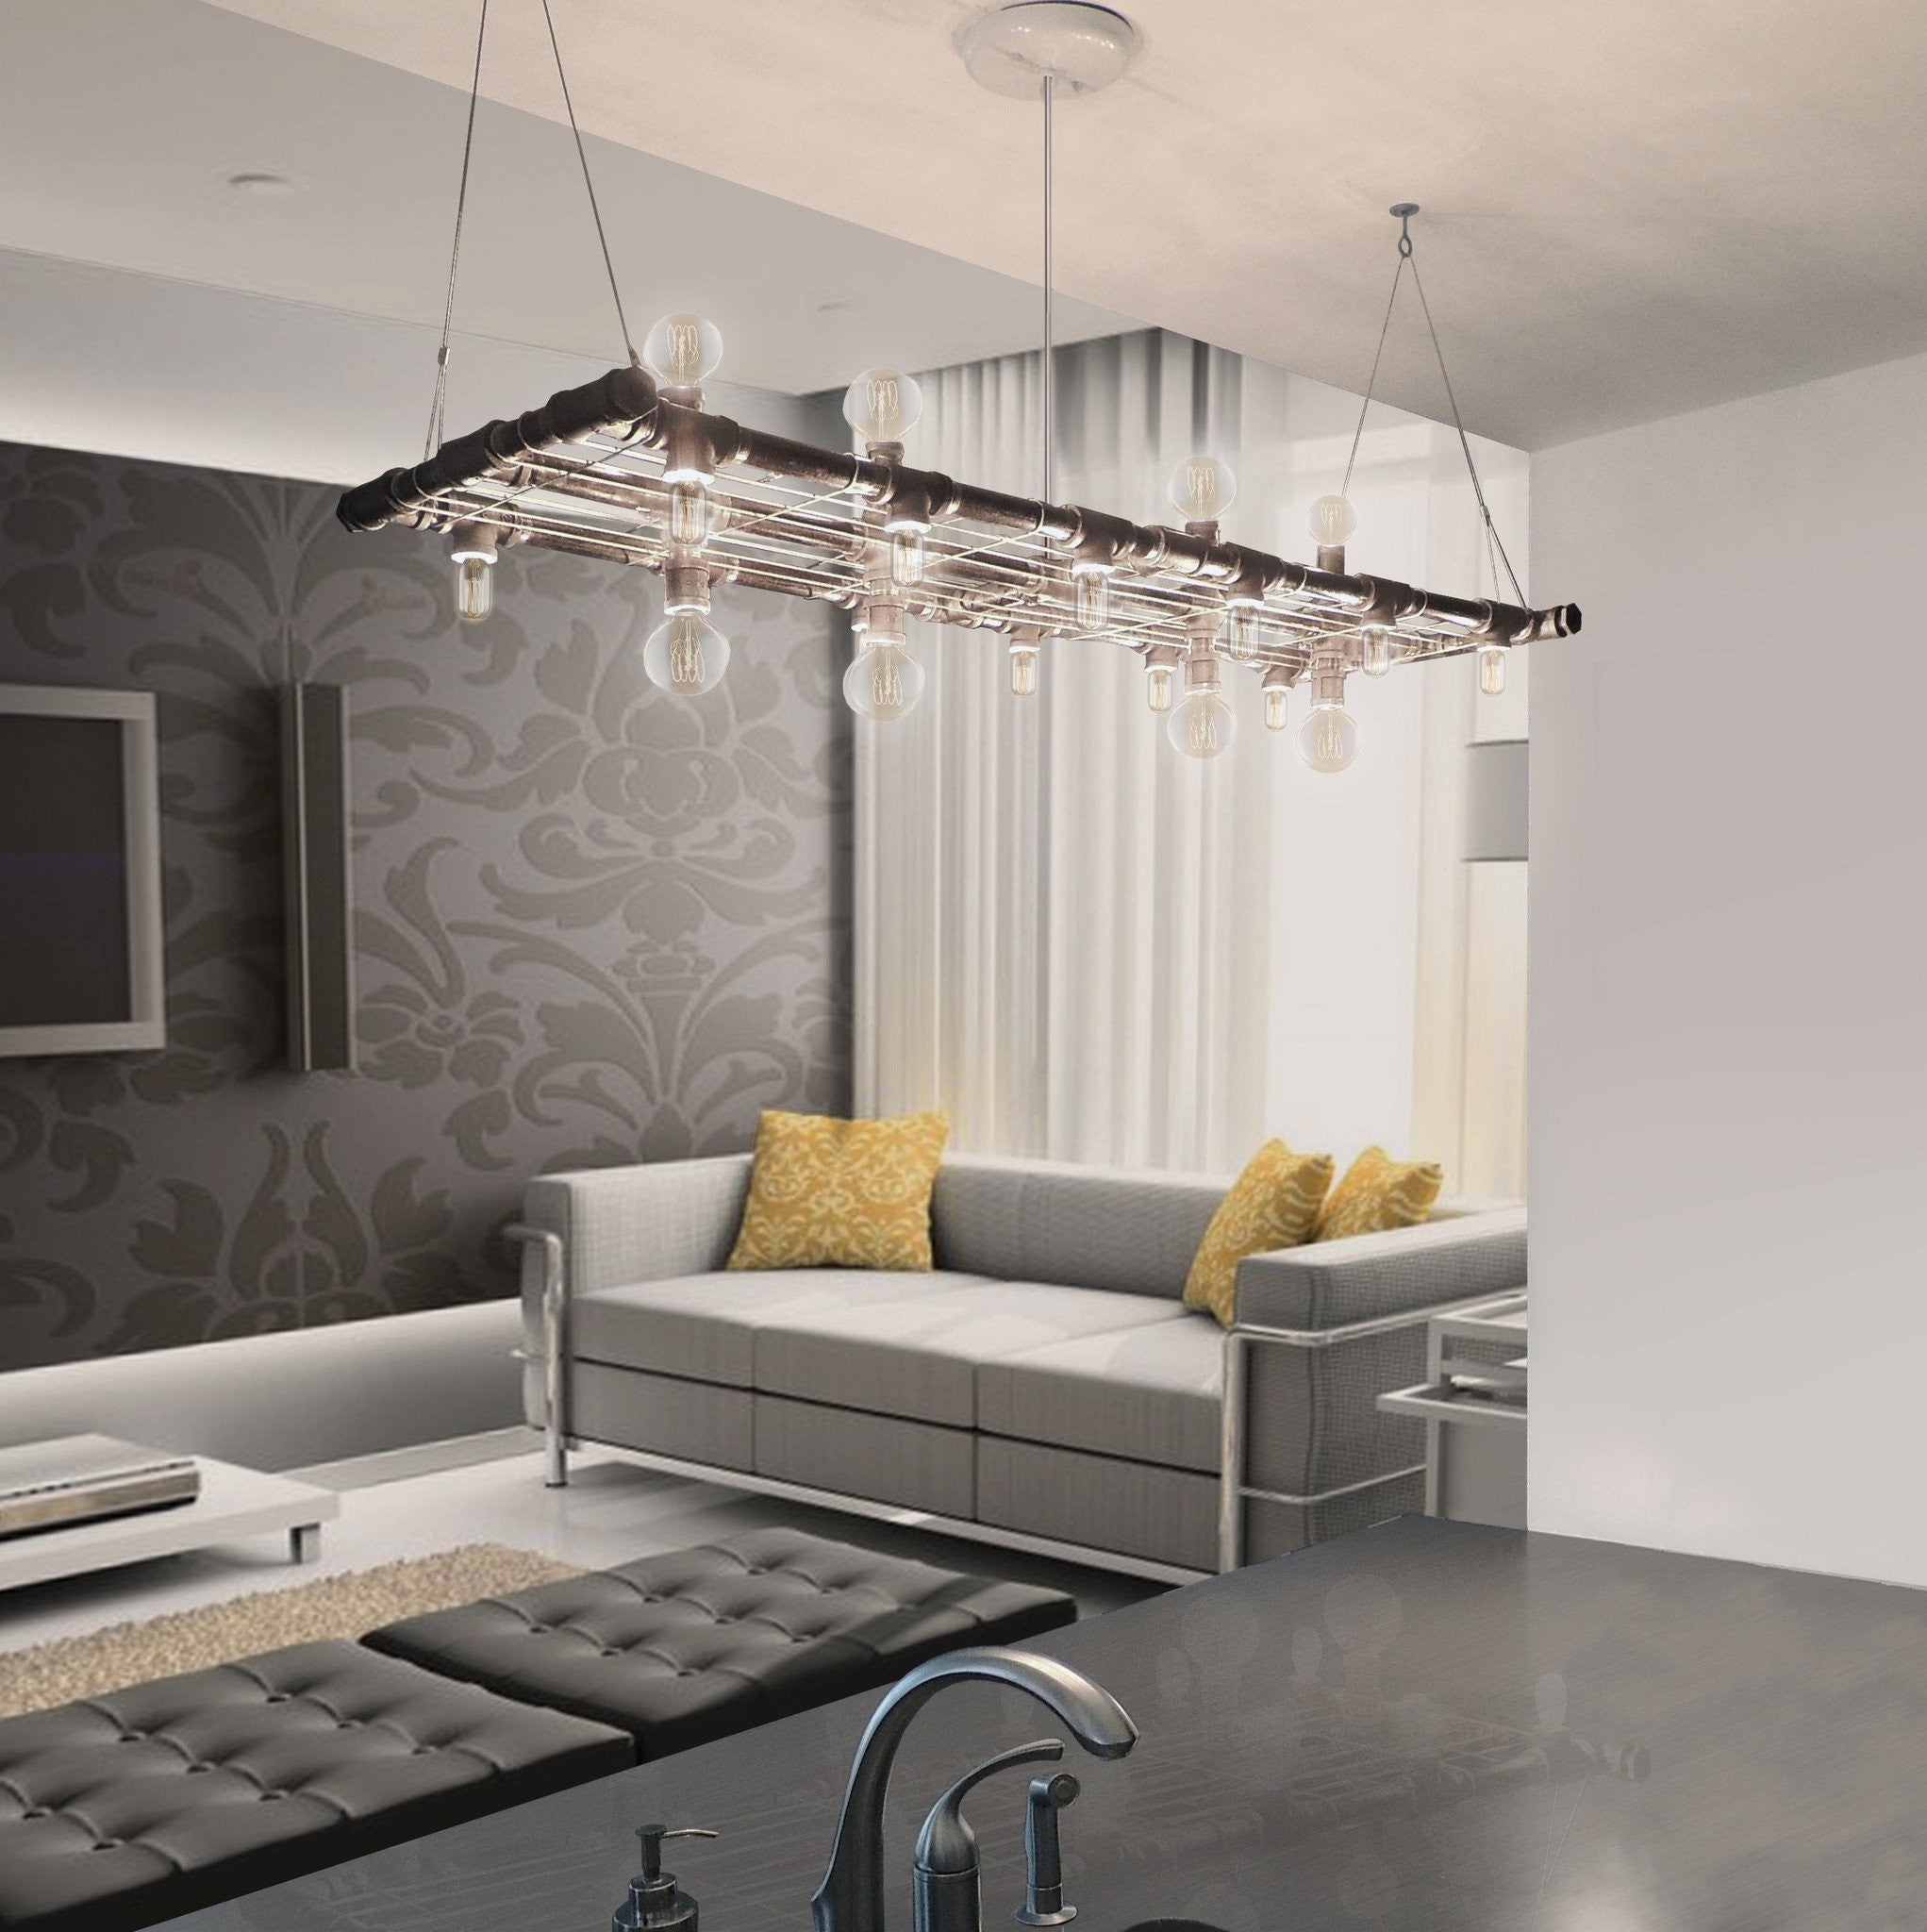 Raw Collection Banqueting Linear Suspension